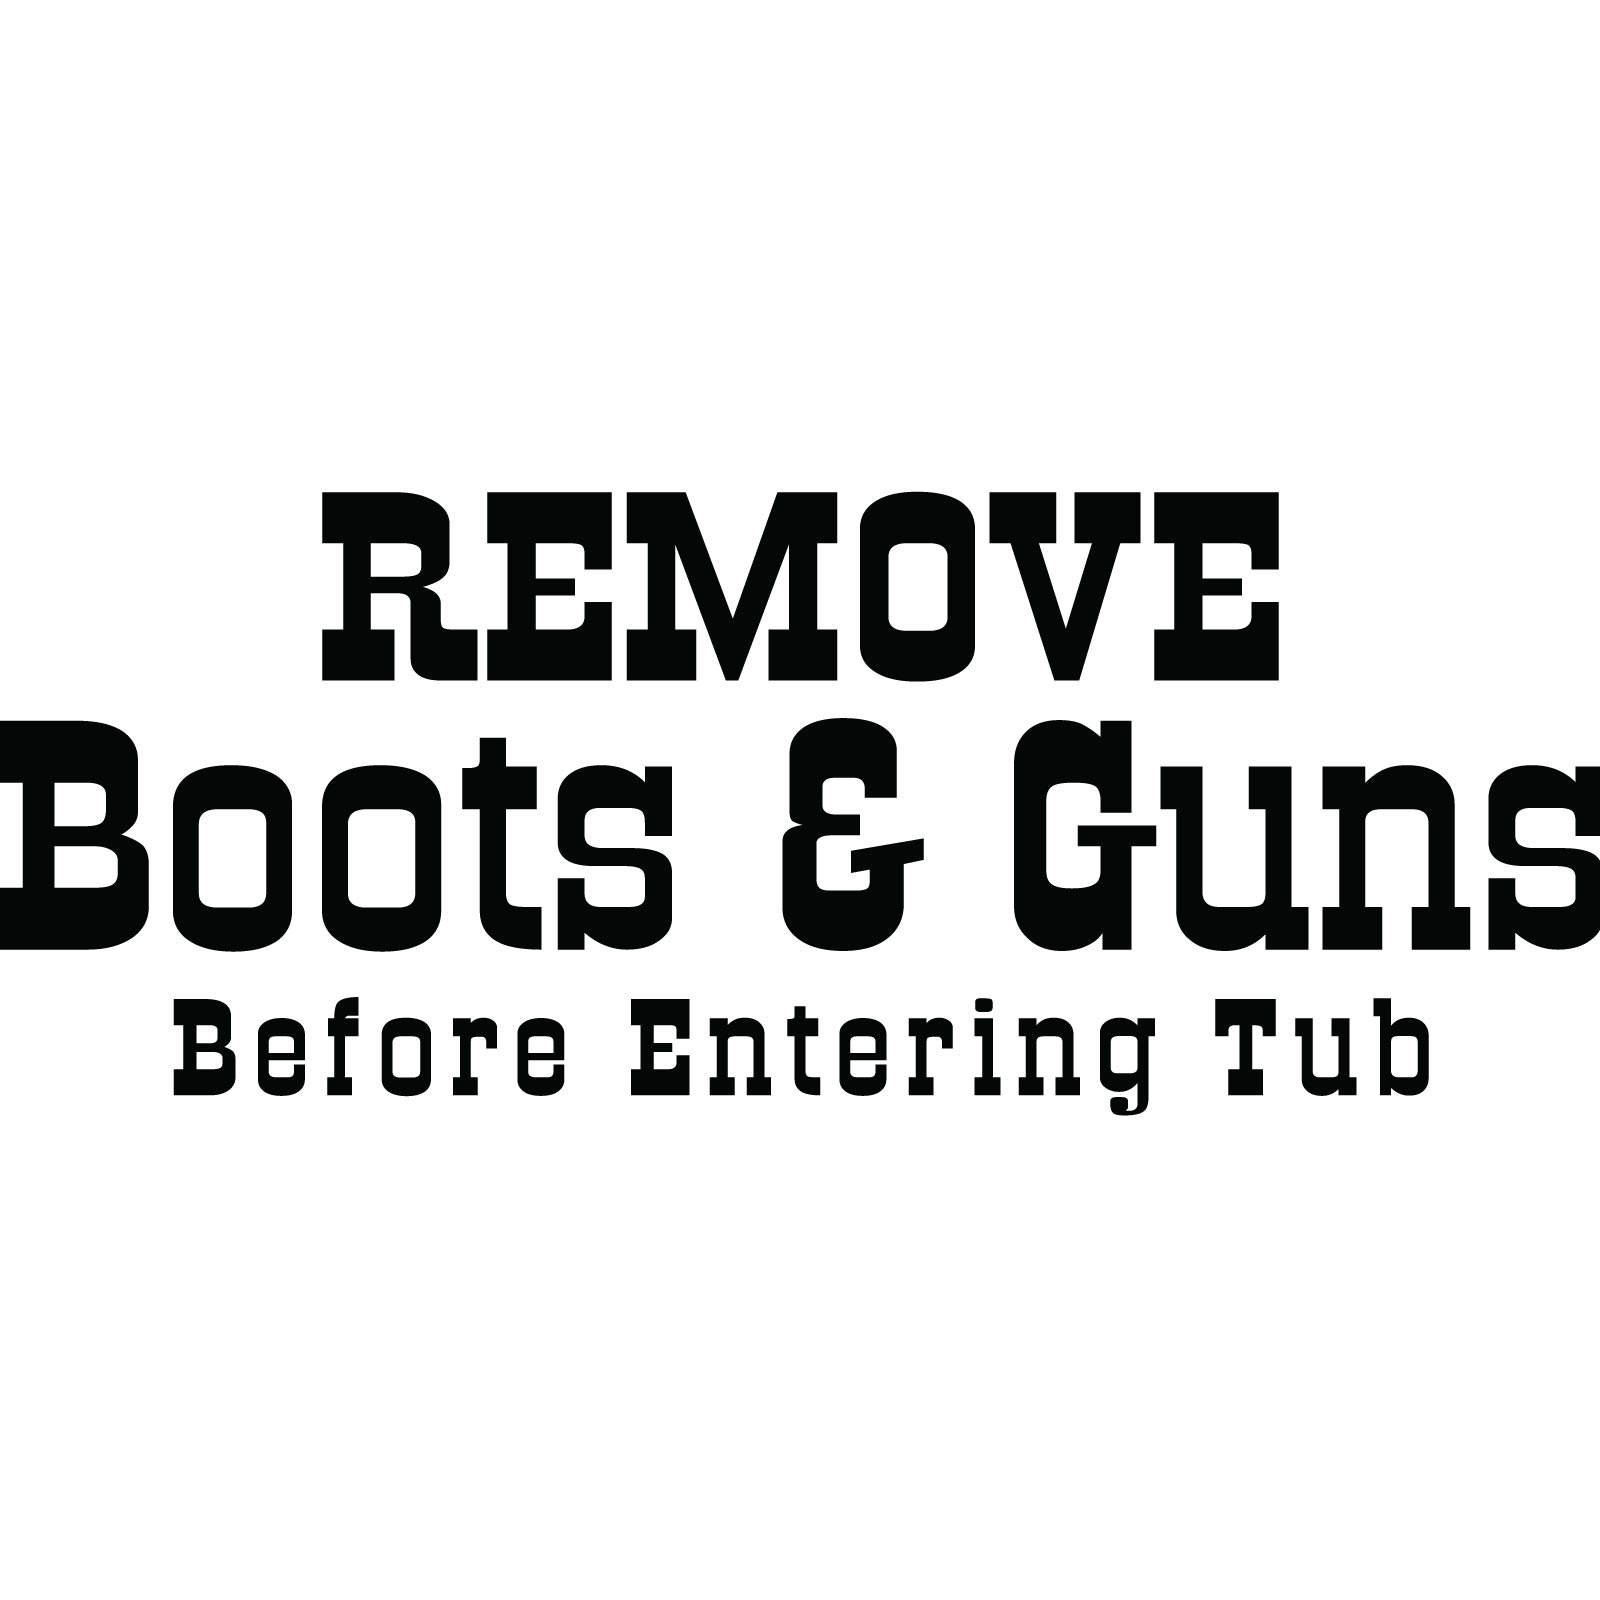 Remove Boots And Guns Bathroom Quote Wall Sticker World Of Wall